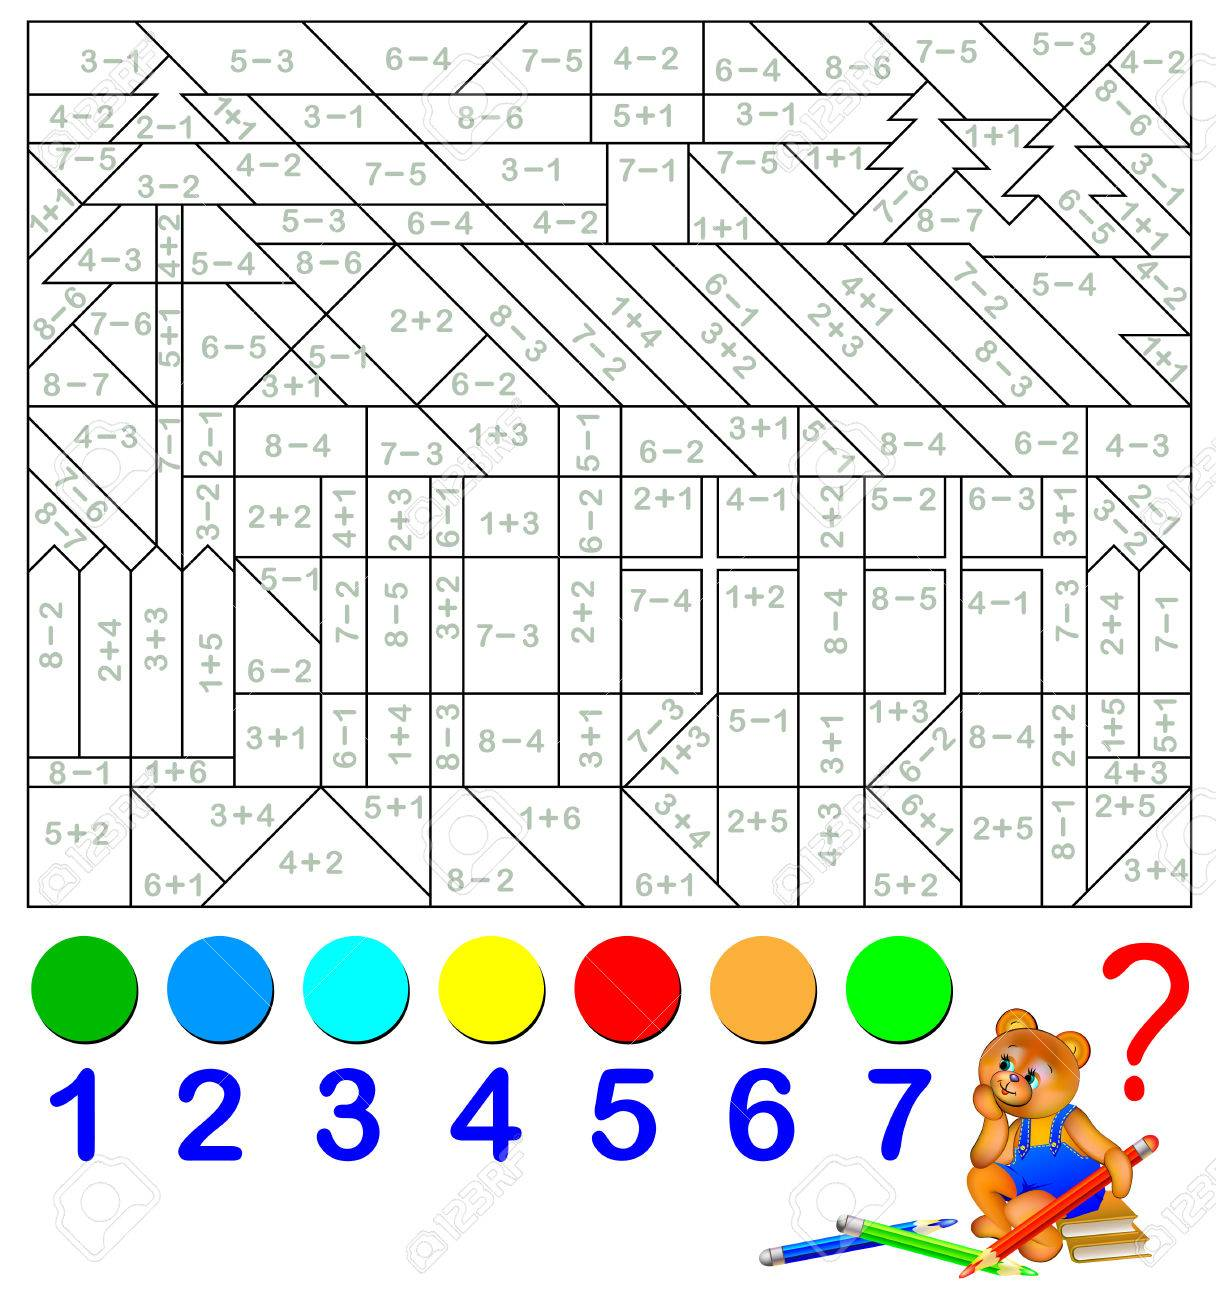 Mathematical worksheet for children on addition and subtraction. Solve examples and paint the image in relevant colors. - 82634309